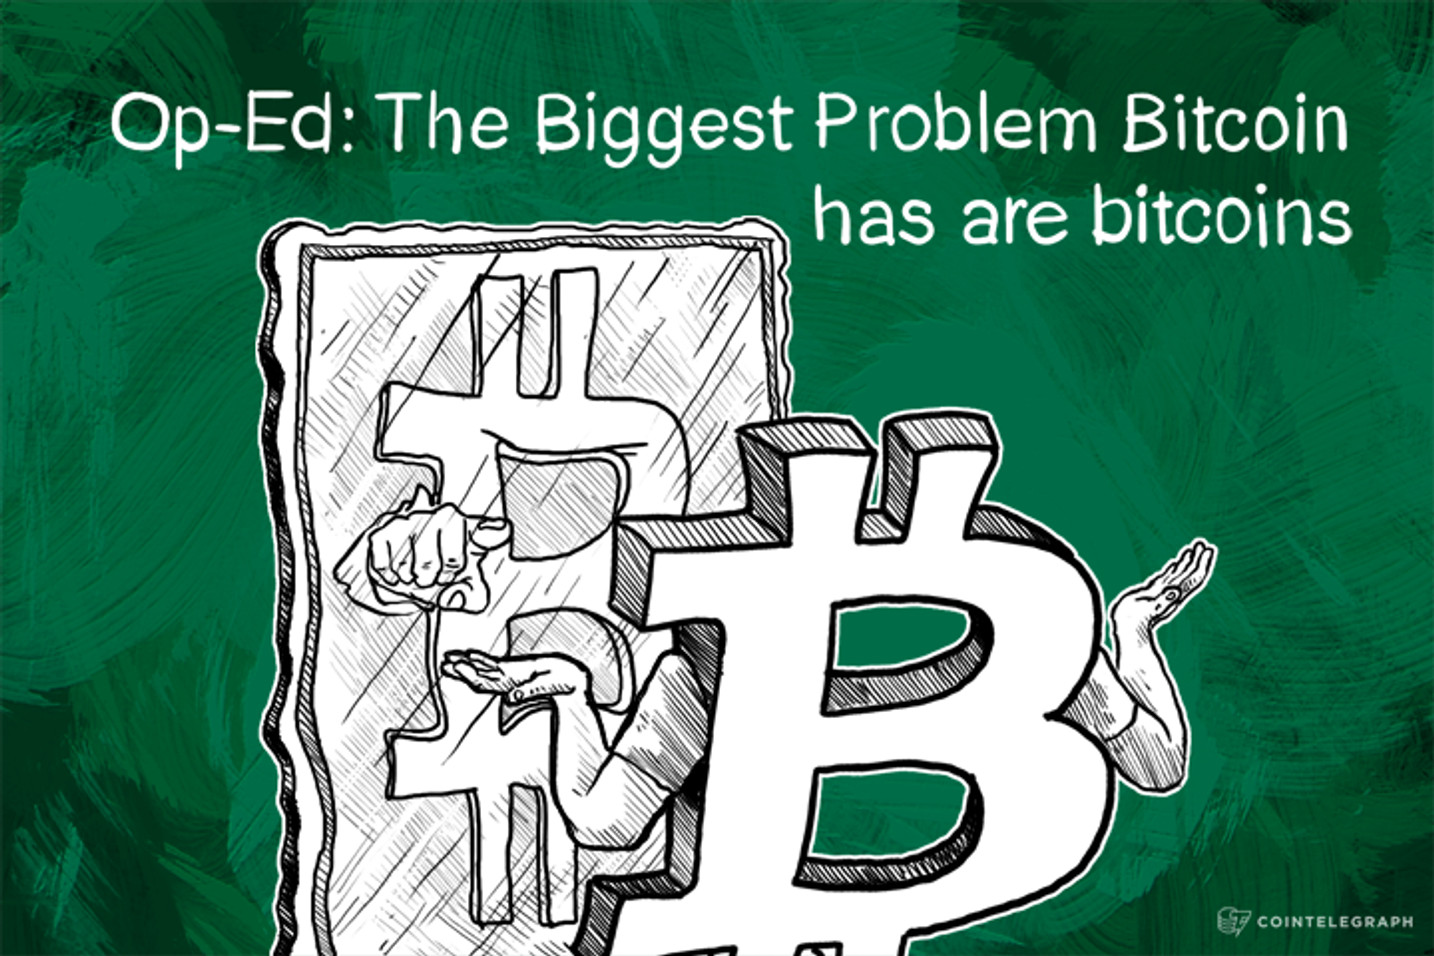 Op-Ed: The Biggest Problem Bitcoin has are bitcoins